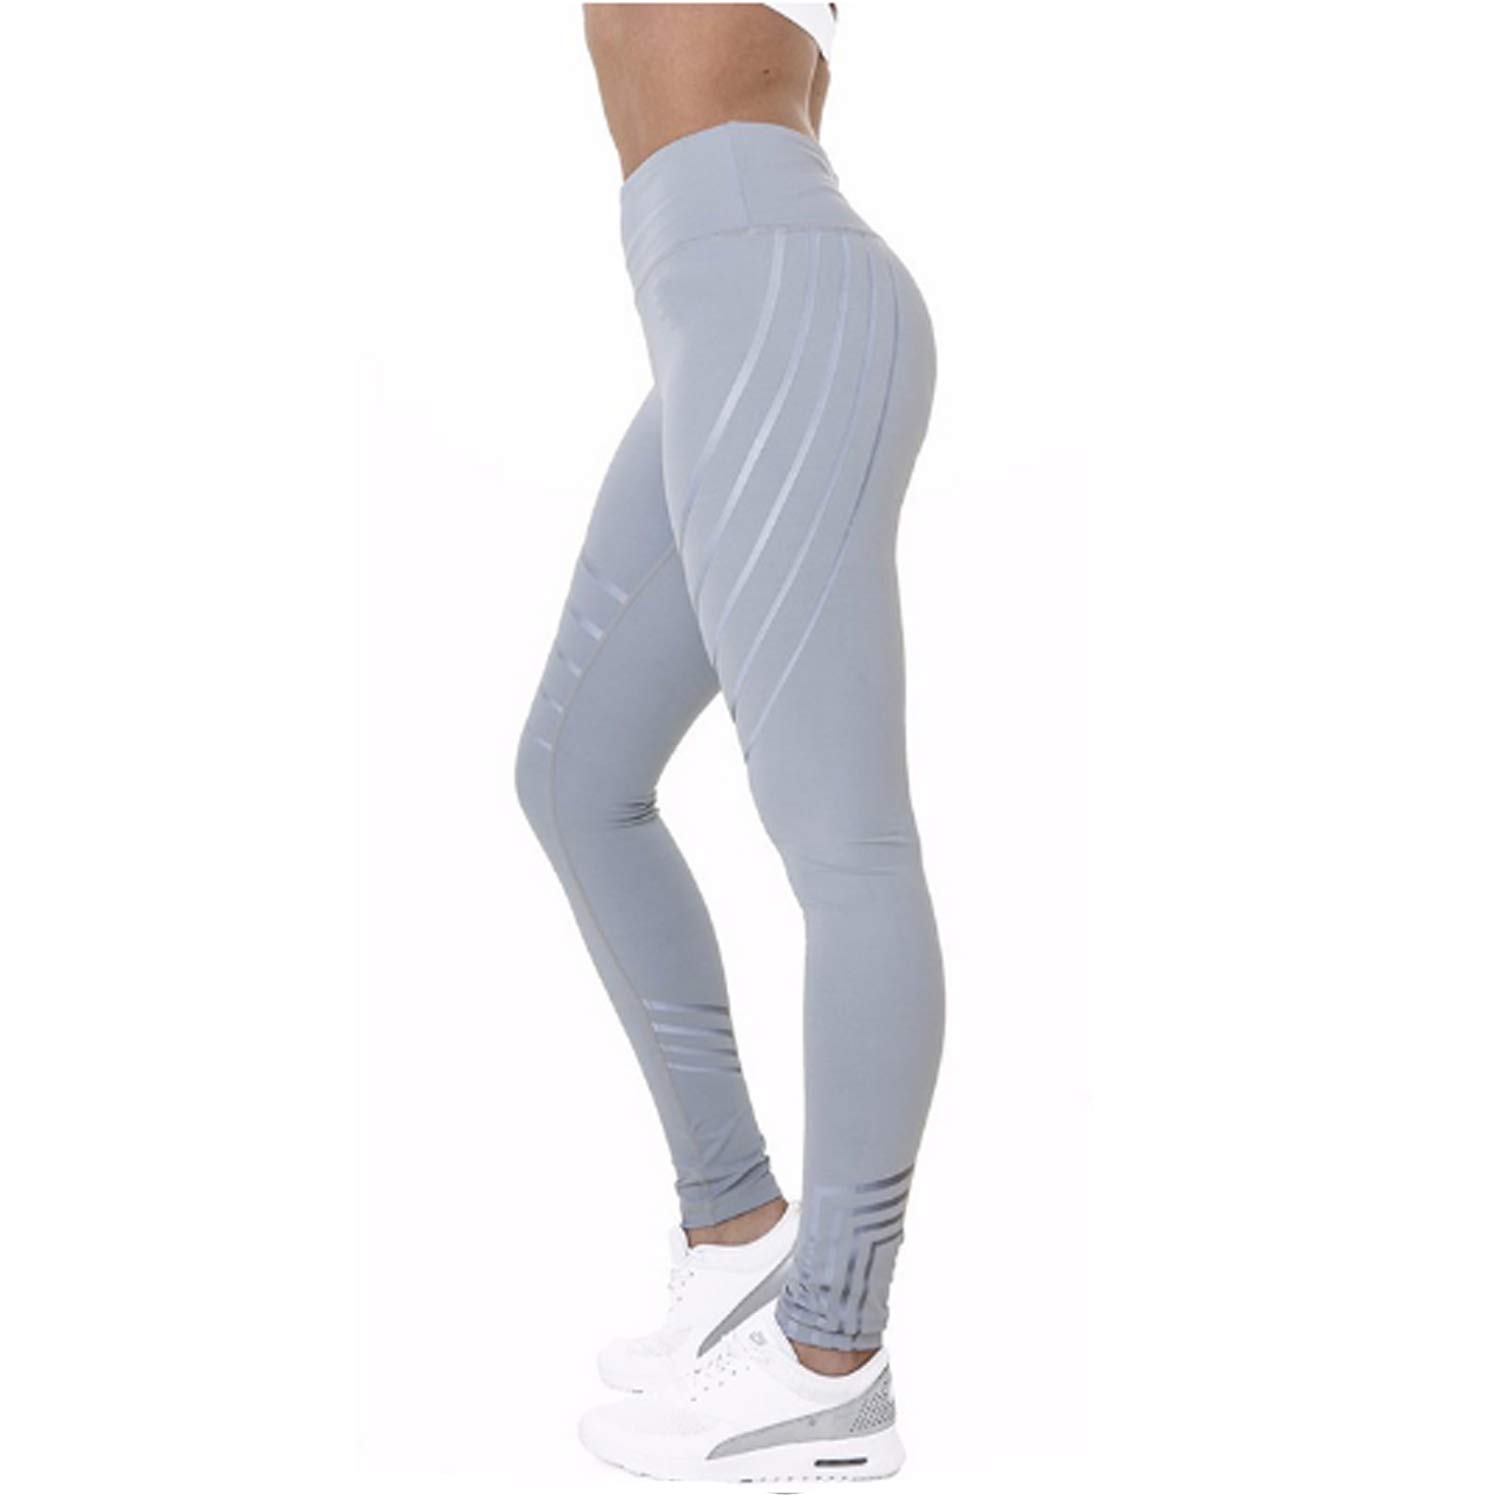 69fe0a1d8ce92b Women Sports Pants Sexy Skinny Patchwork Gym Workout Training Yoga Leggings  Running Trousers - UKsportsOutdoors